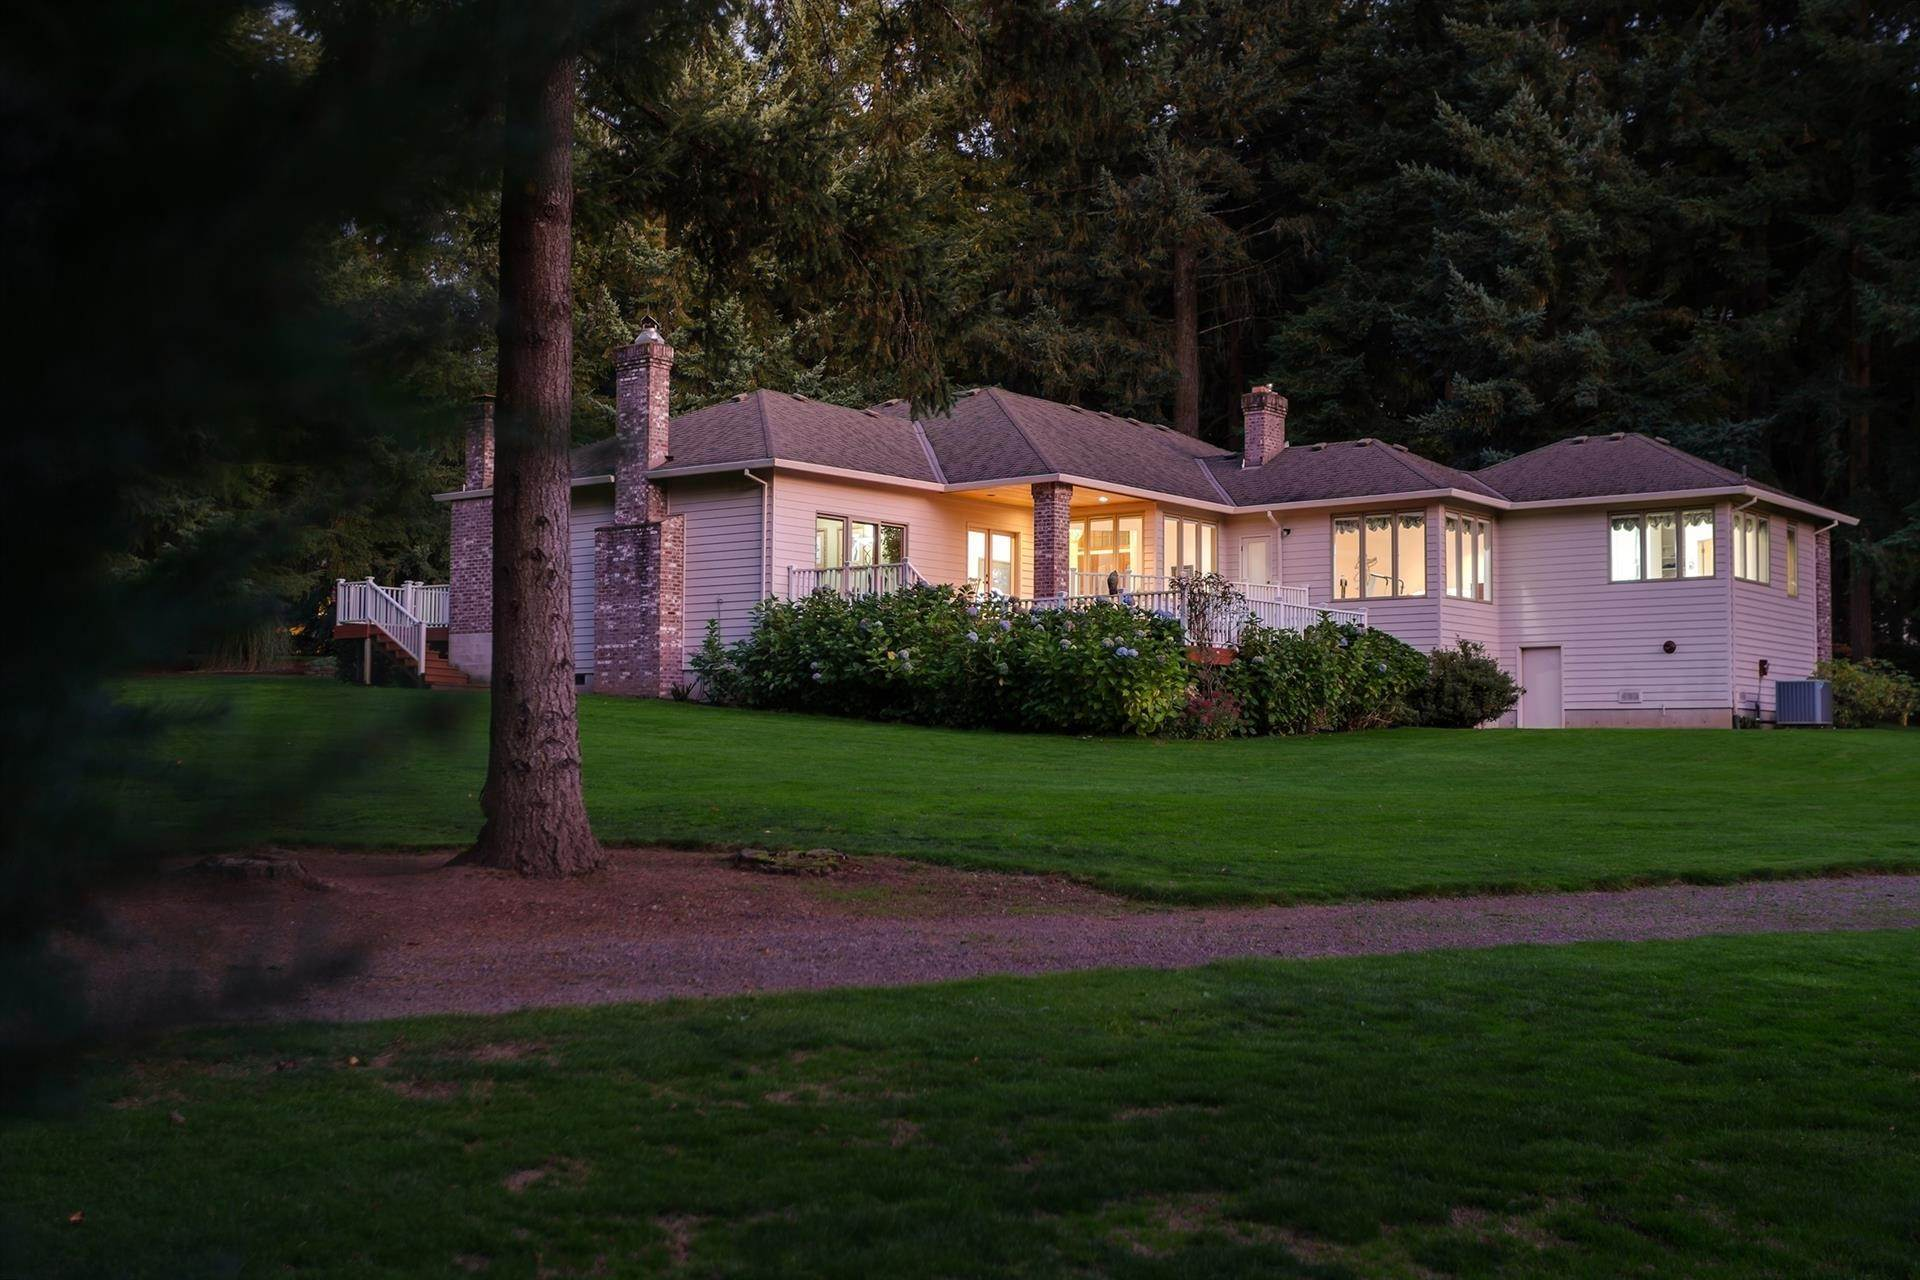 Single Family Home for Sale at 5525 SW Delker Road 5525 SW DELKER RD Tualatin, Oregon,97062 United States